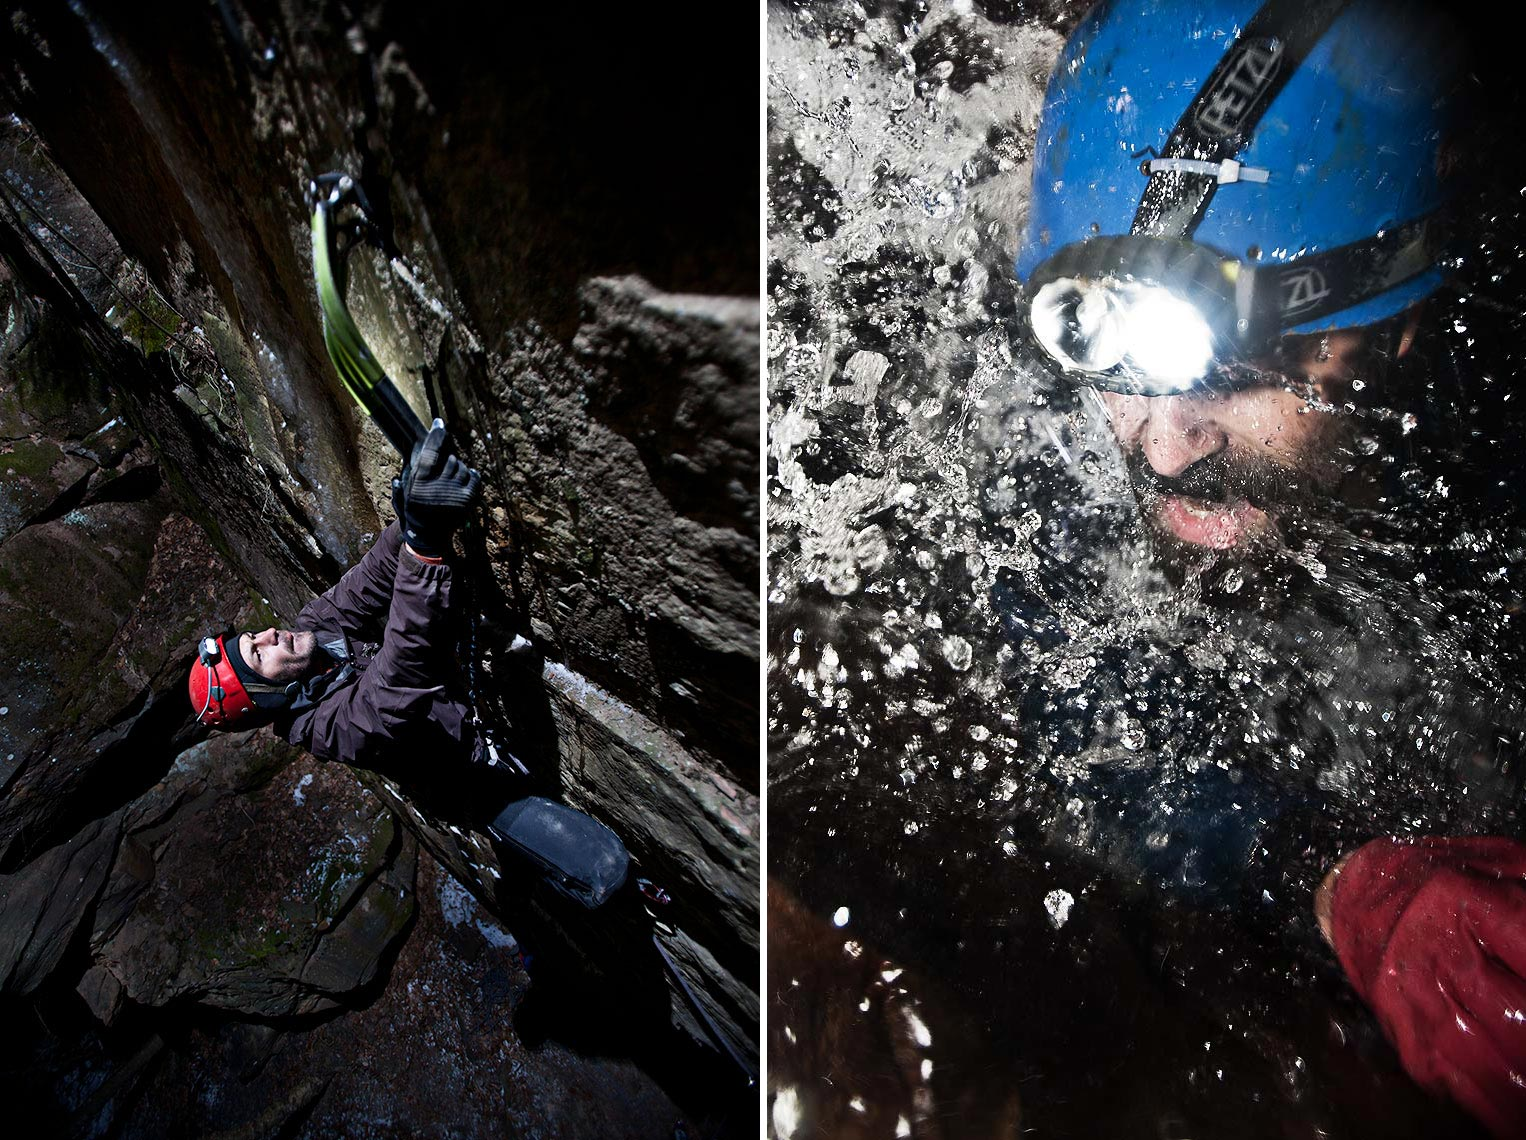 Night_Climb_cave_splash